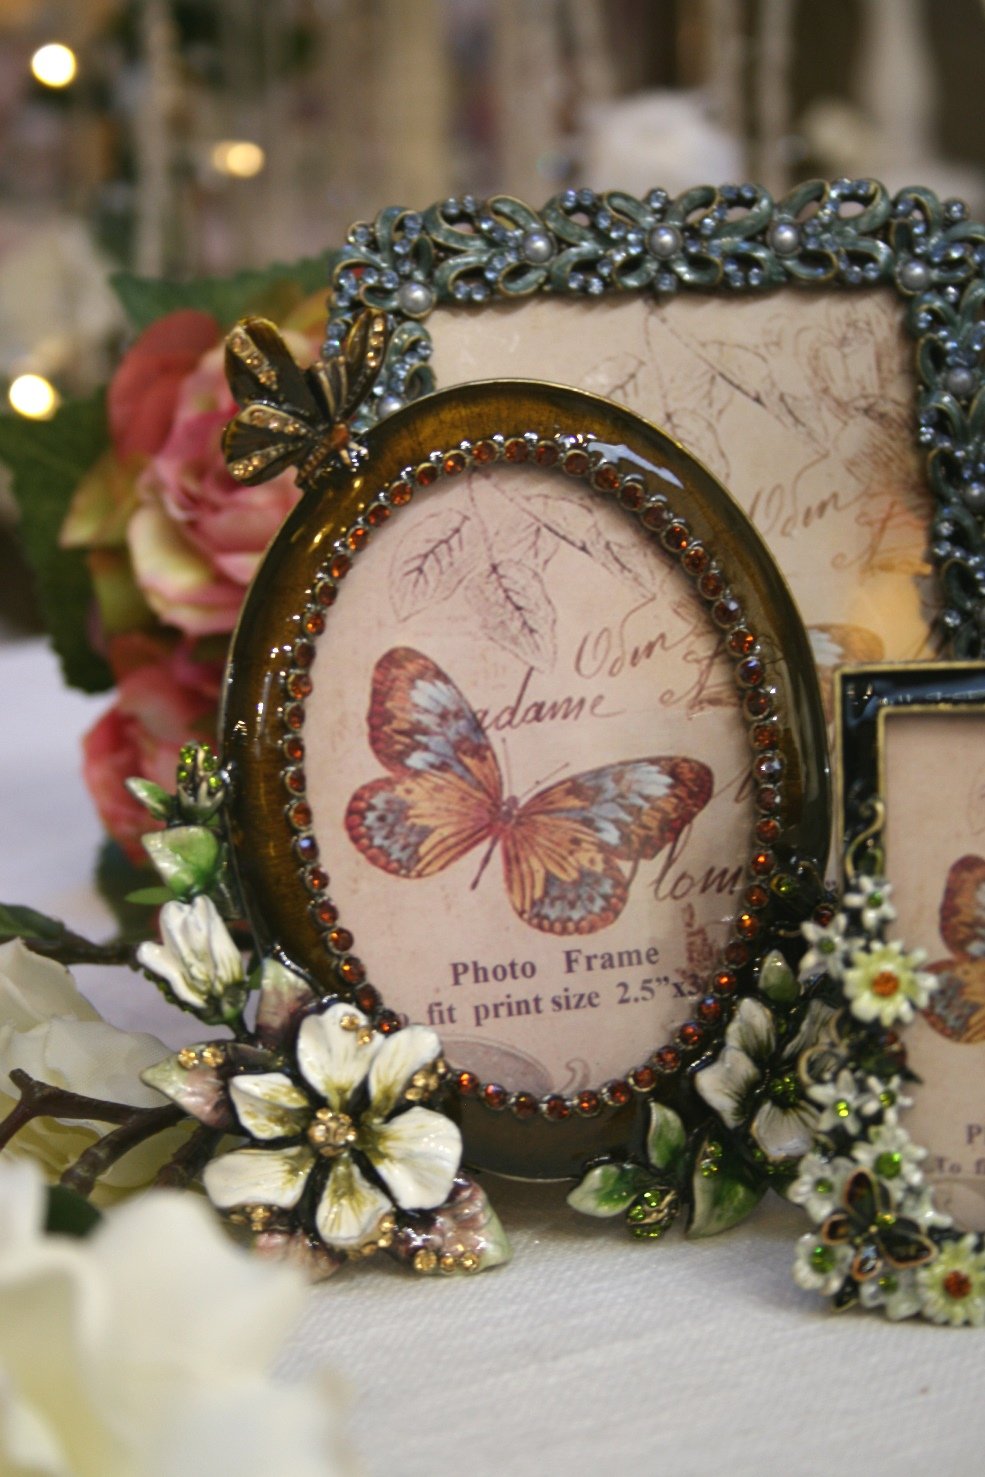 Bejewelled Oval Photo Frame €26.00